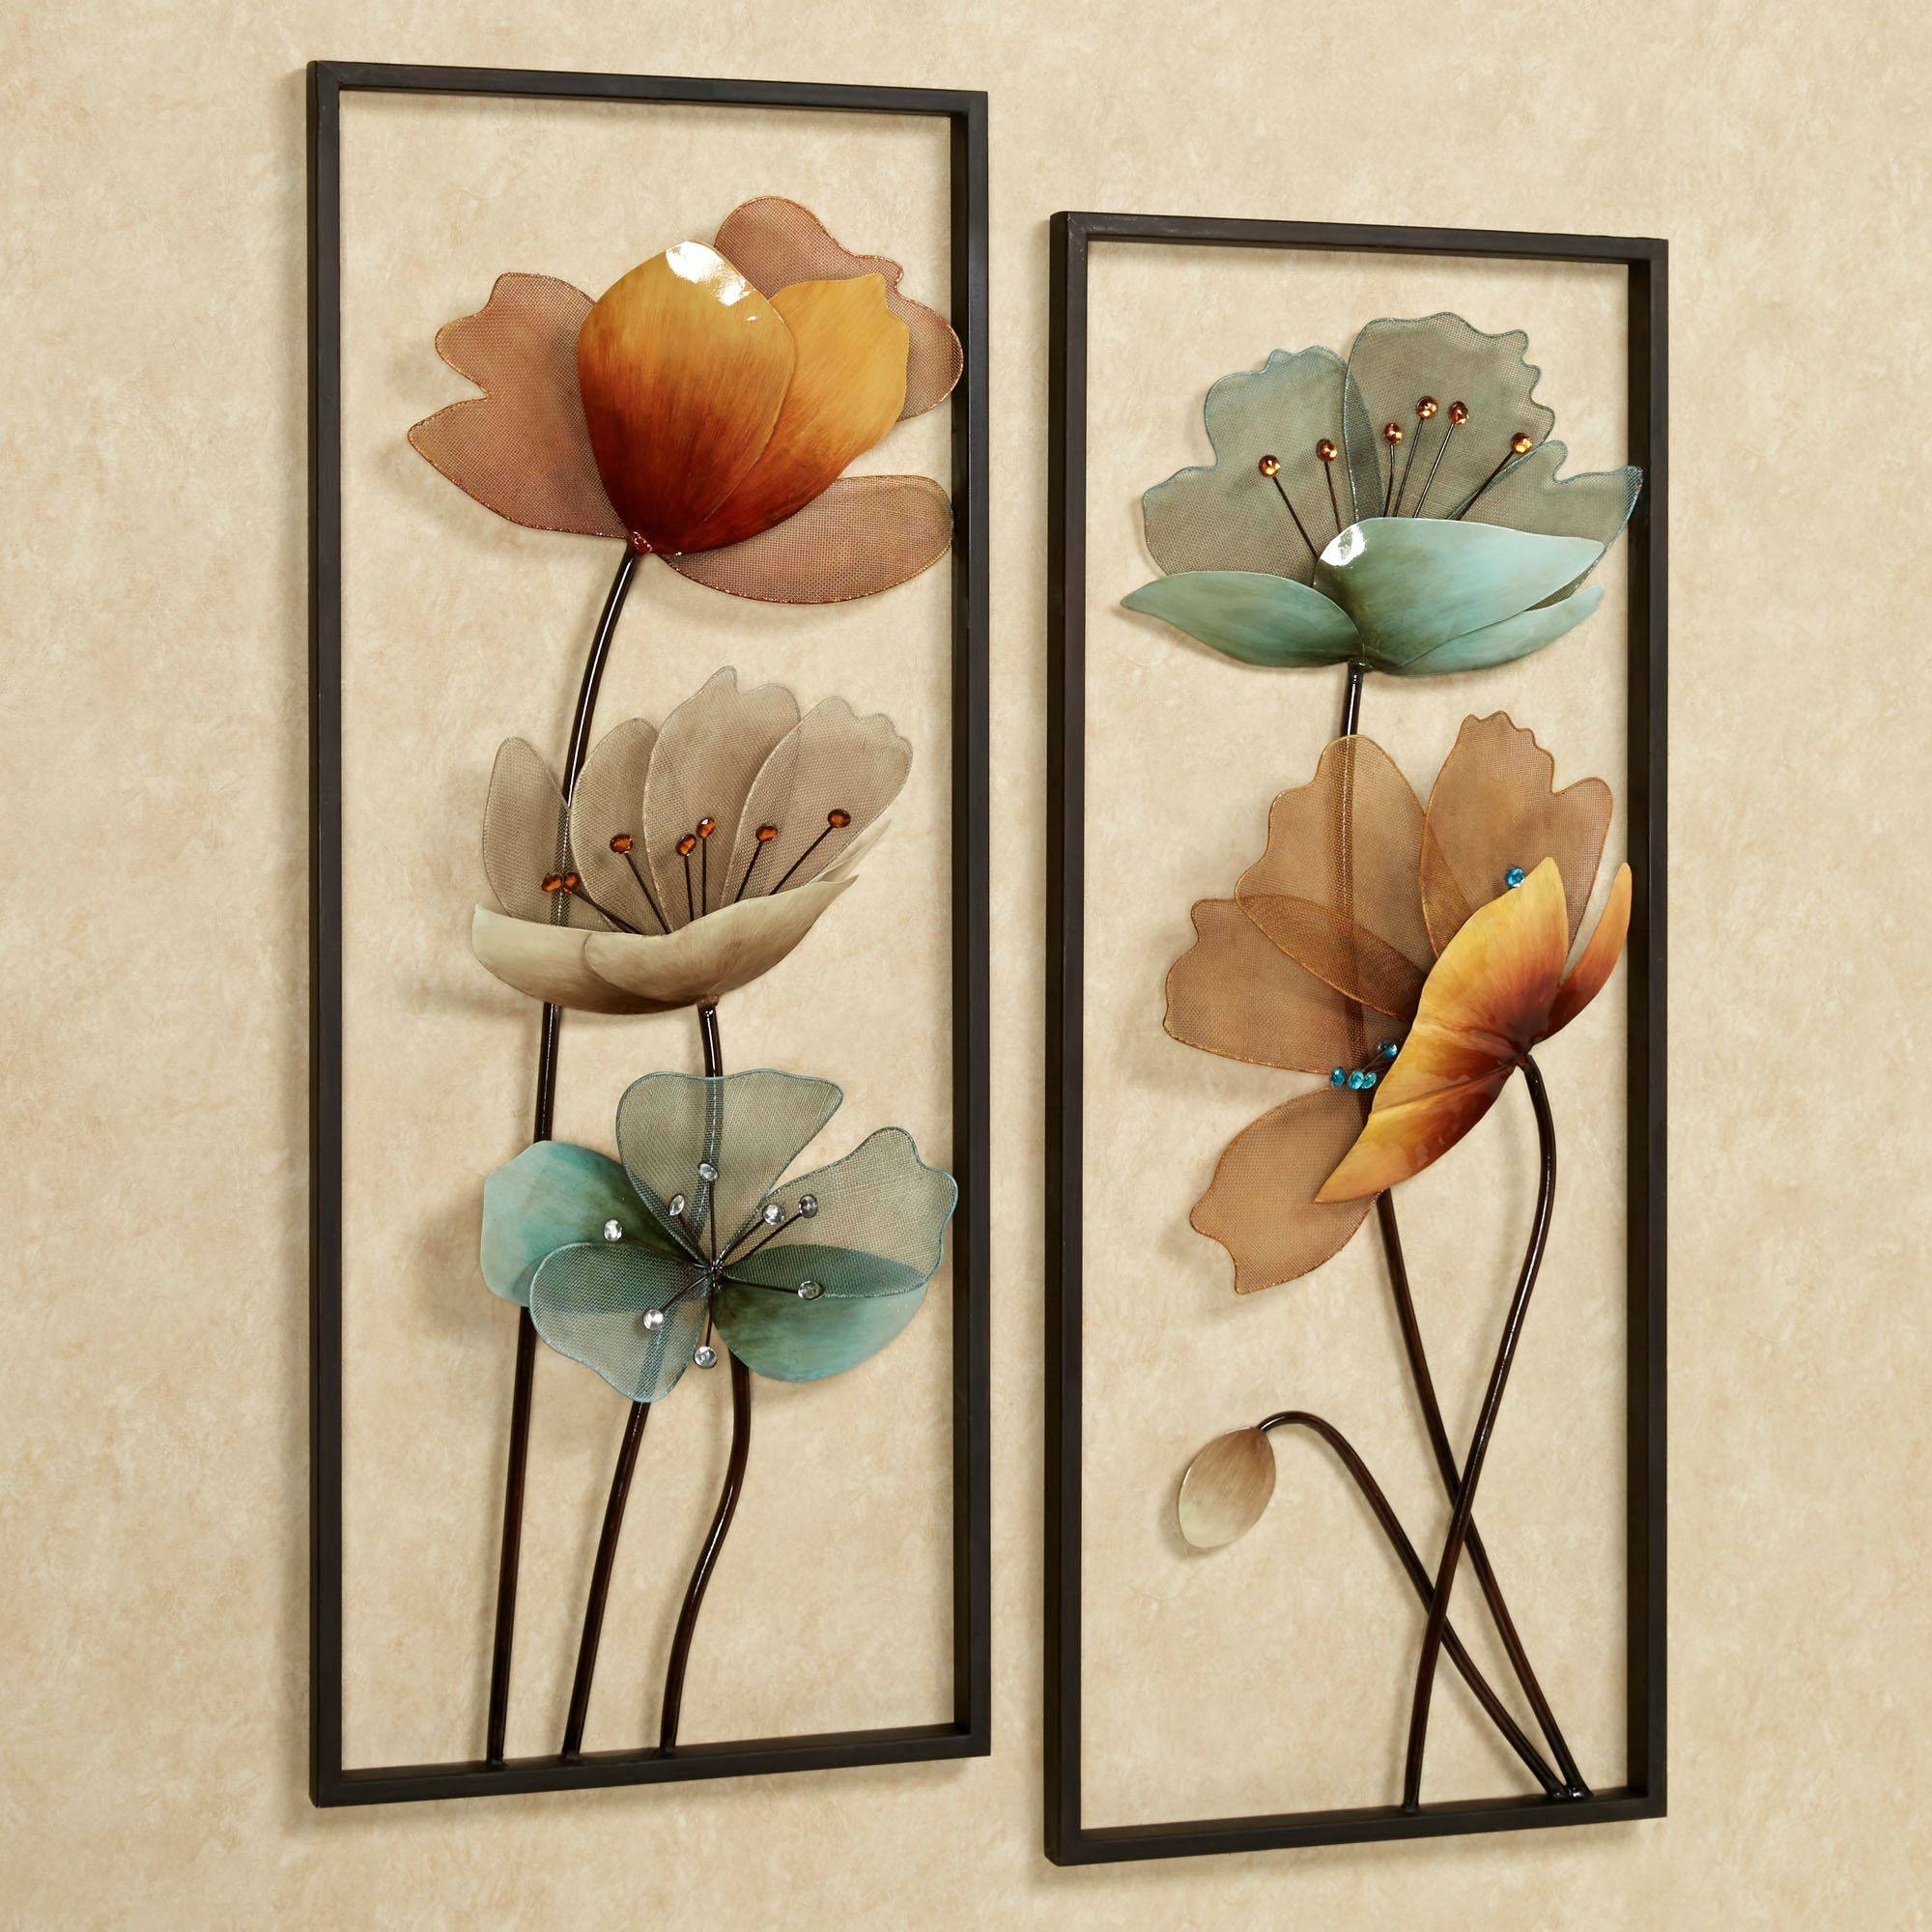 Flower Wall Art | Touch Of Class With Regard To Current Contemporary Metal Wall Art Flowers (View 7 of 20)